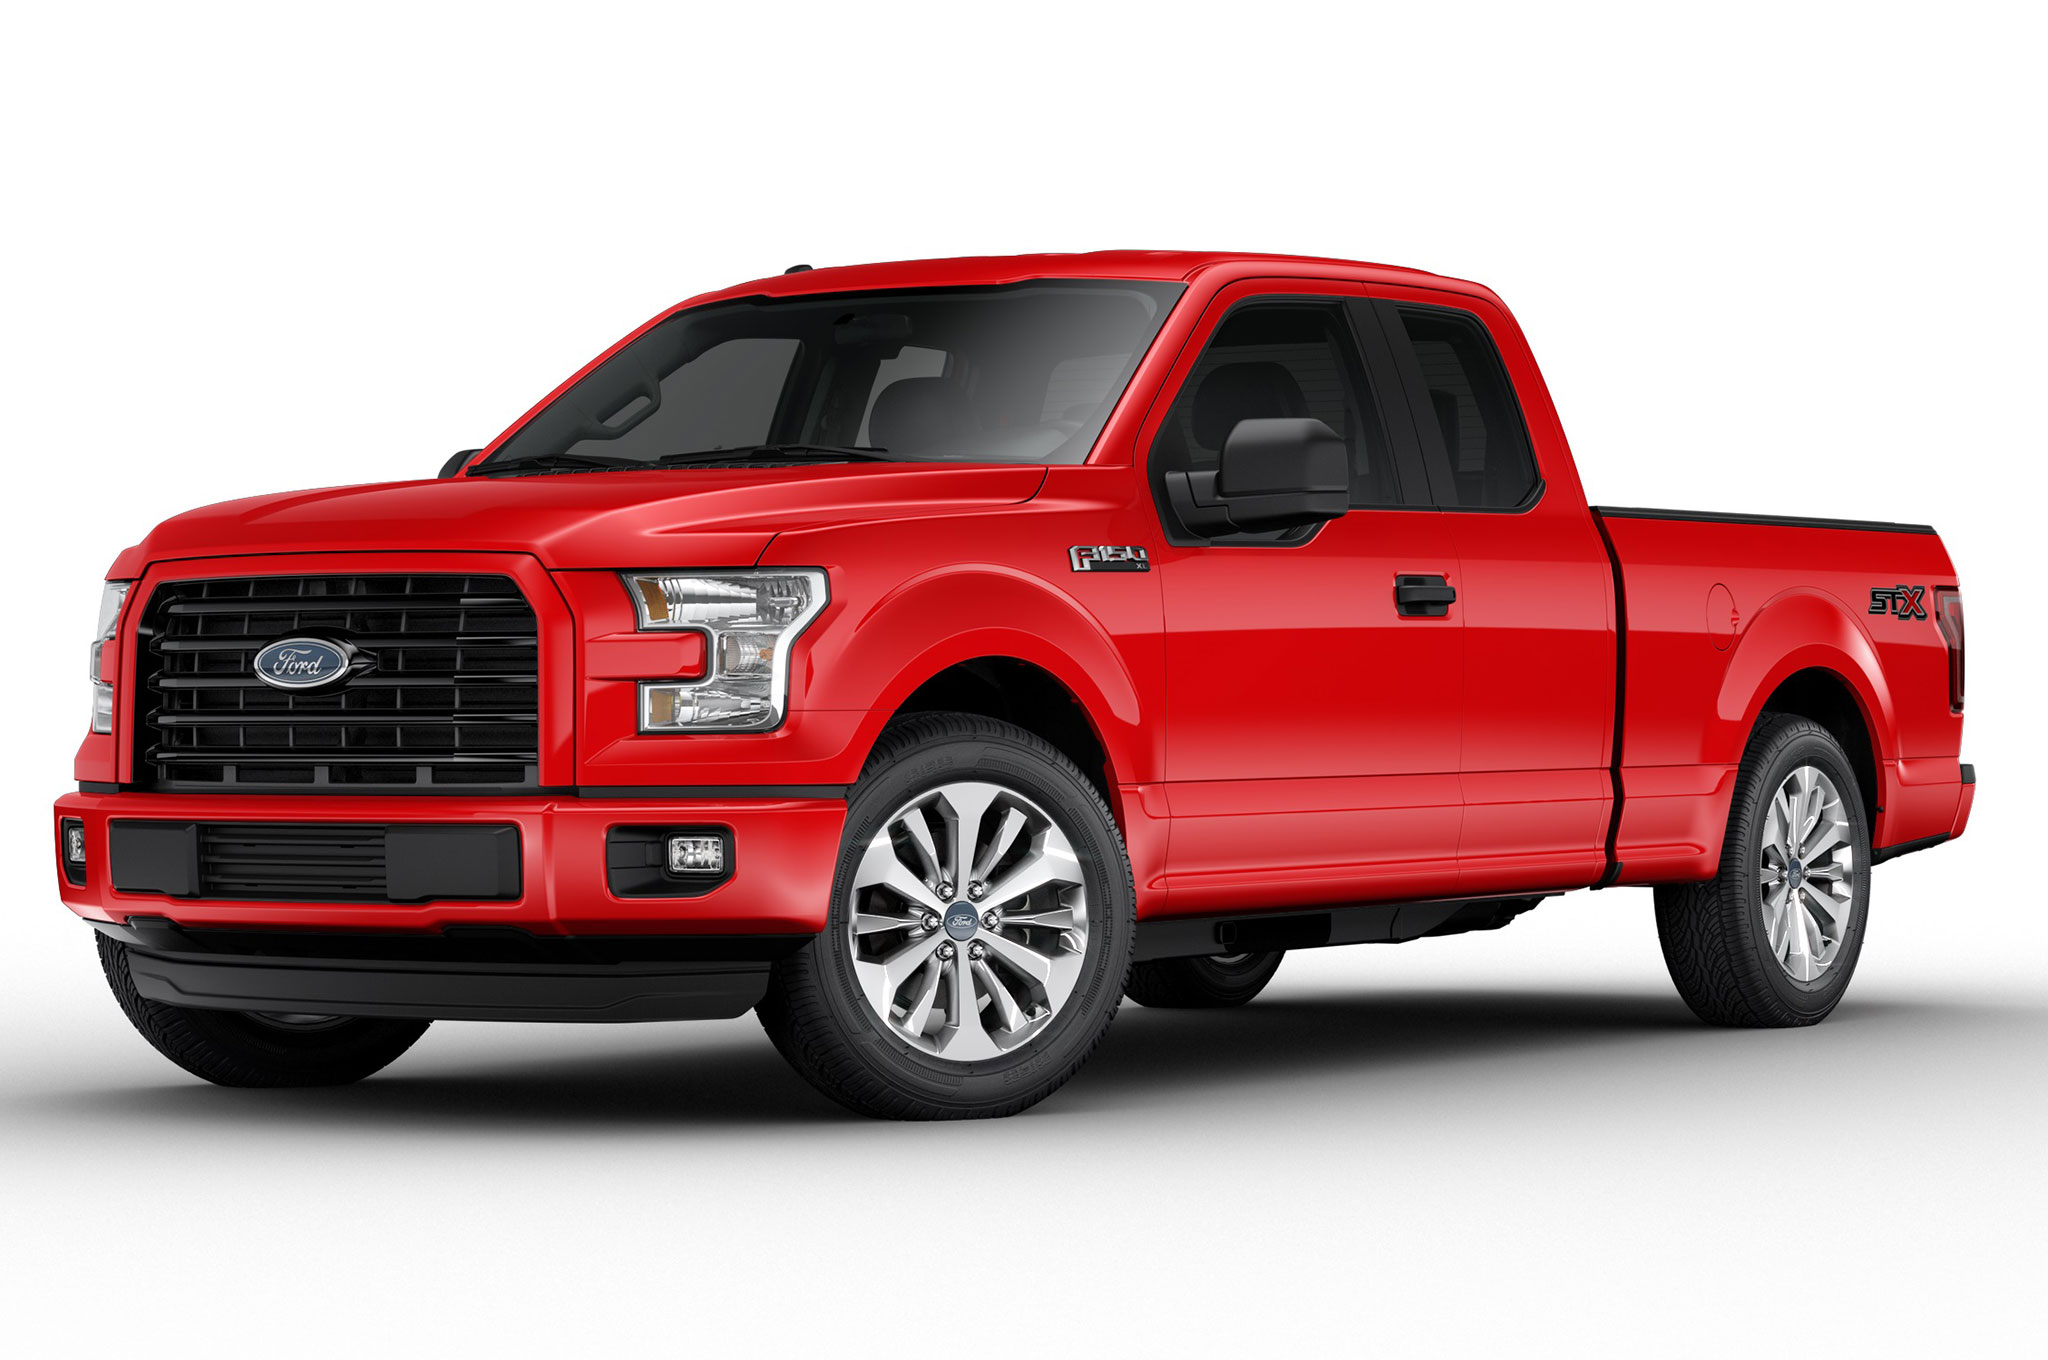 2017 Ford F-150 With New EcoBoost V-6 Packs 470 lb-ft of Torque ...